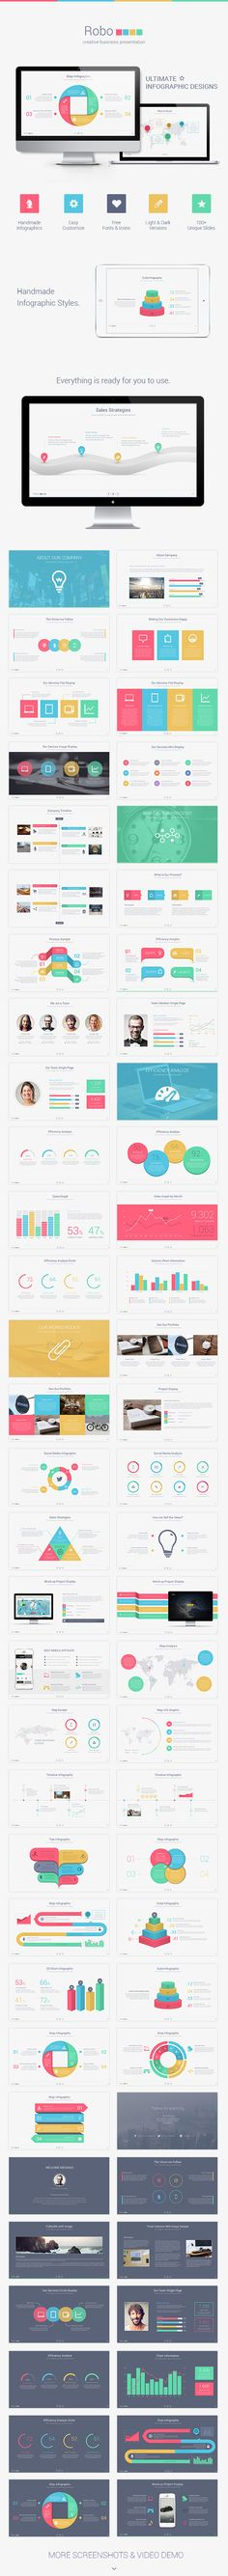 Keynote Presentation Template | Download: http://graphicriver.net/item/robo-keynote-presentation-template/8820860?ref=ksioks